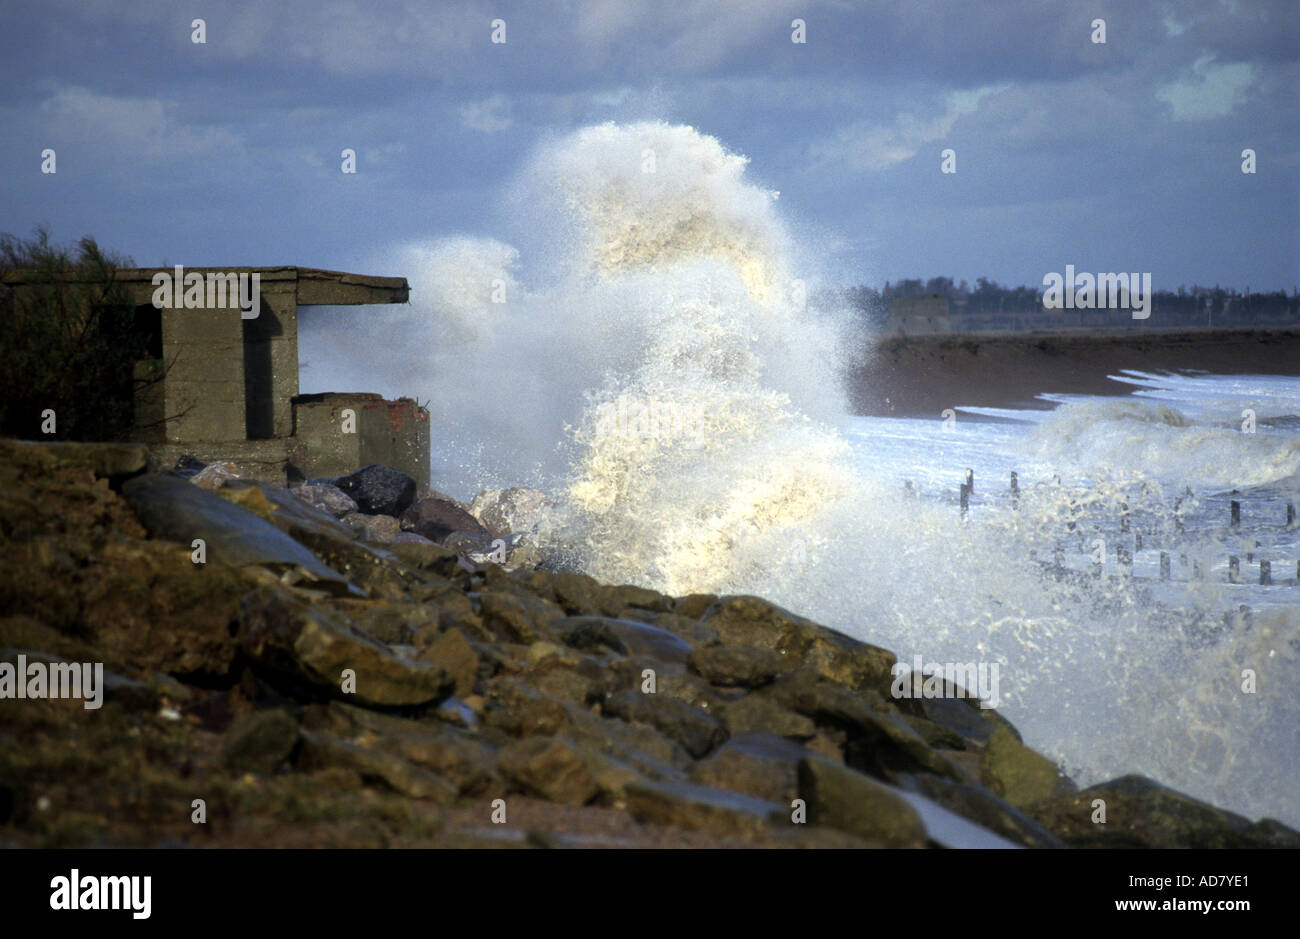 Waves crash against a Second World War pillbox, East Lane, Bawdsey Suffolk, UK. - Stock Image